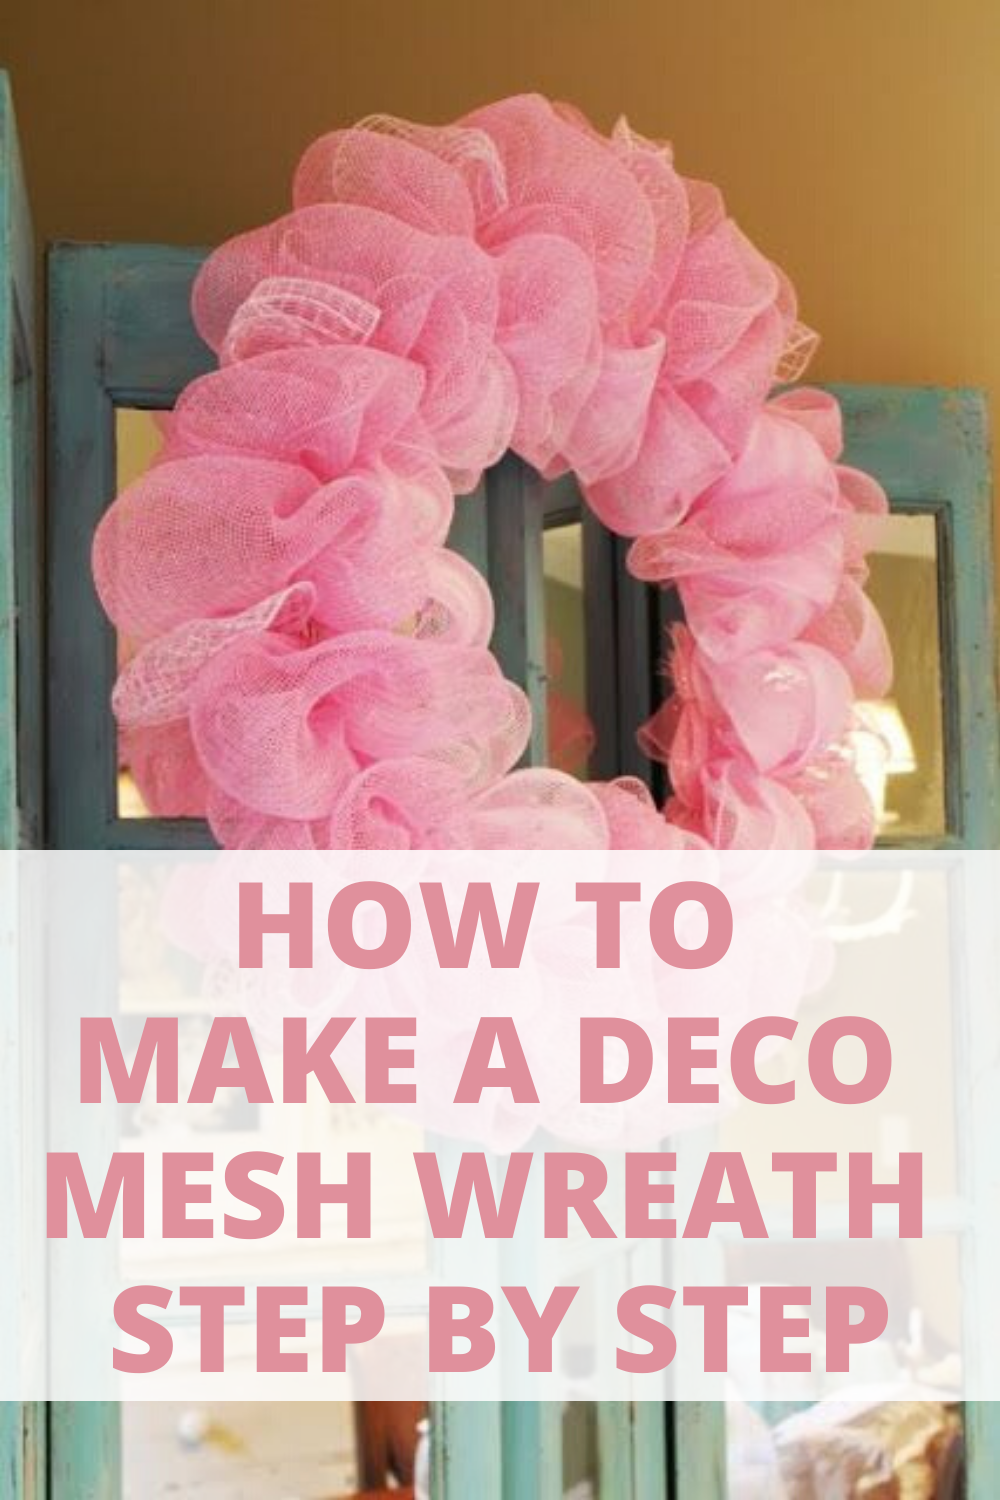 How to make a deco mesh wreath step by step